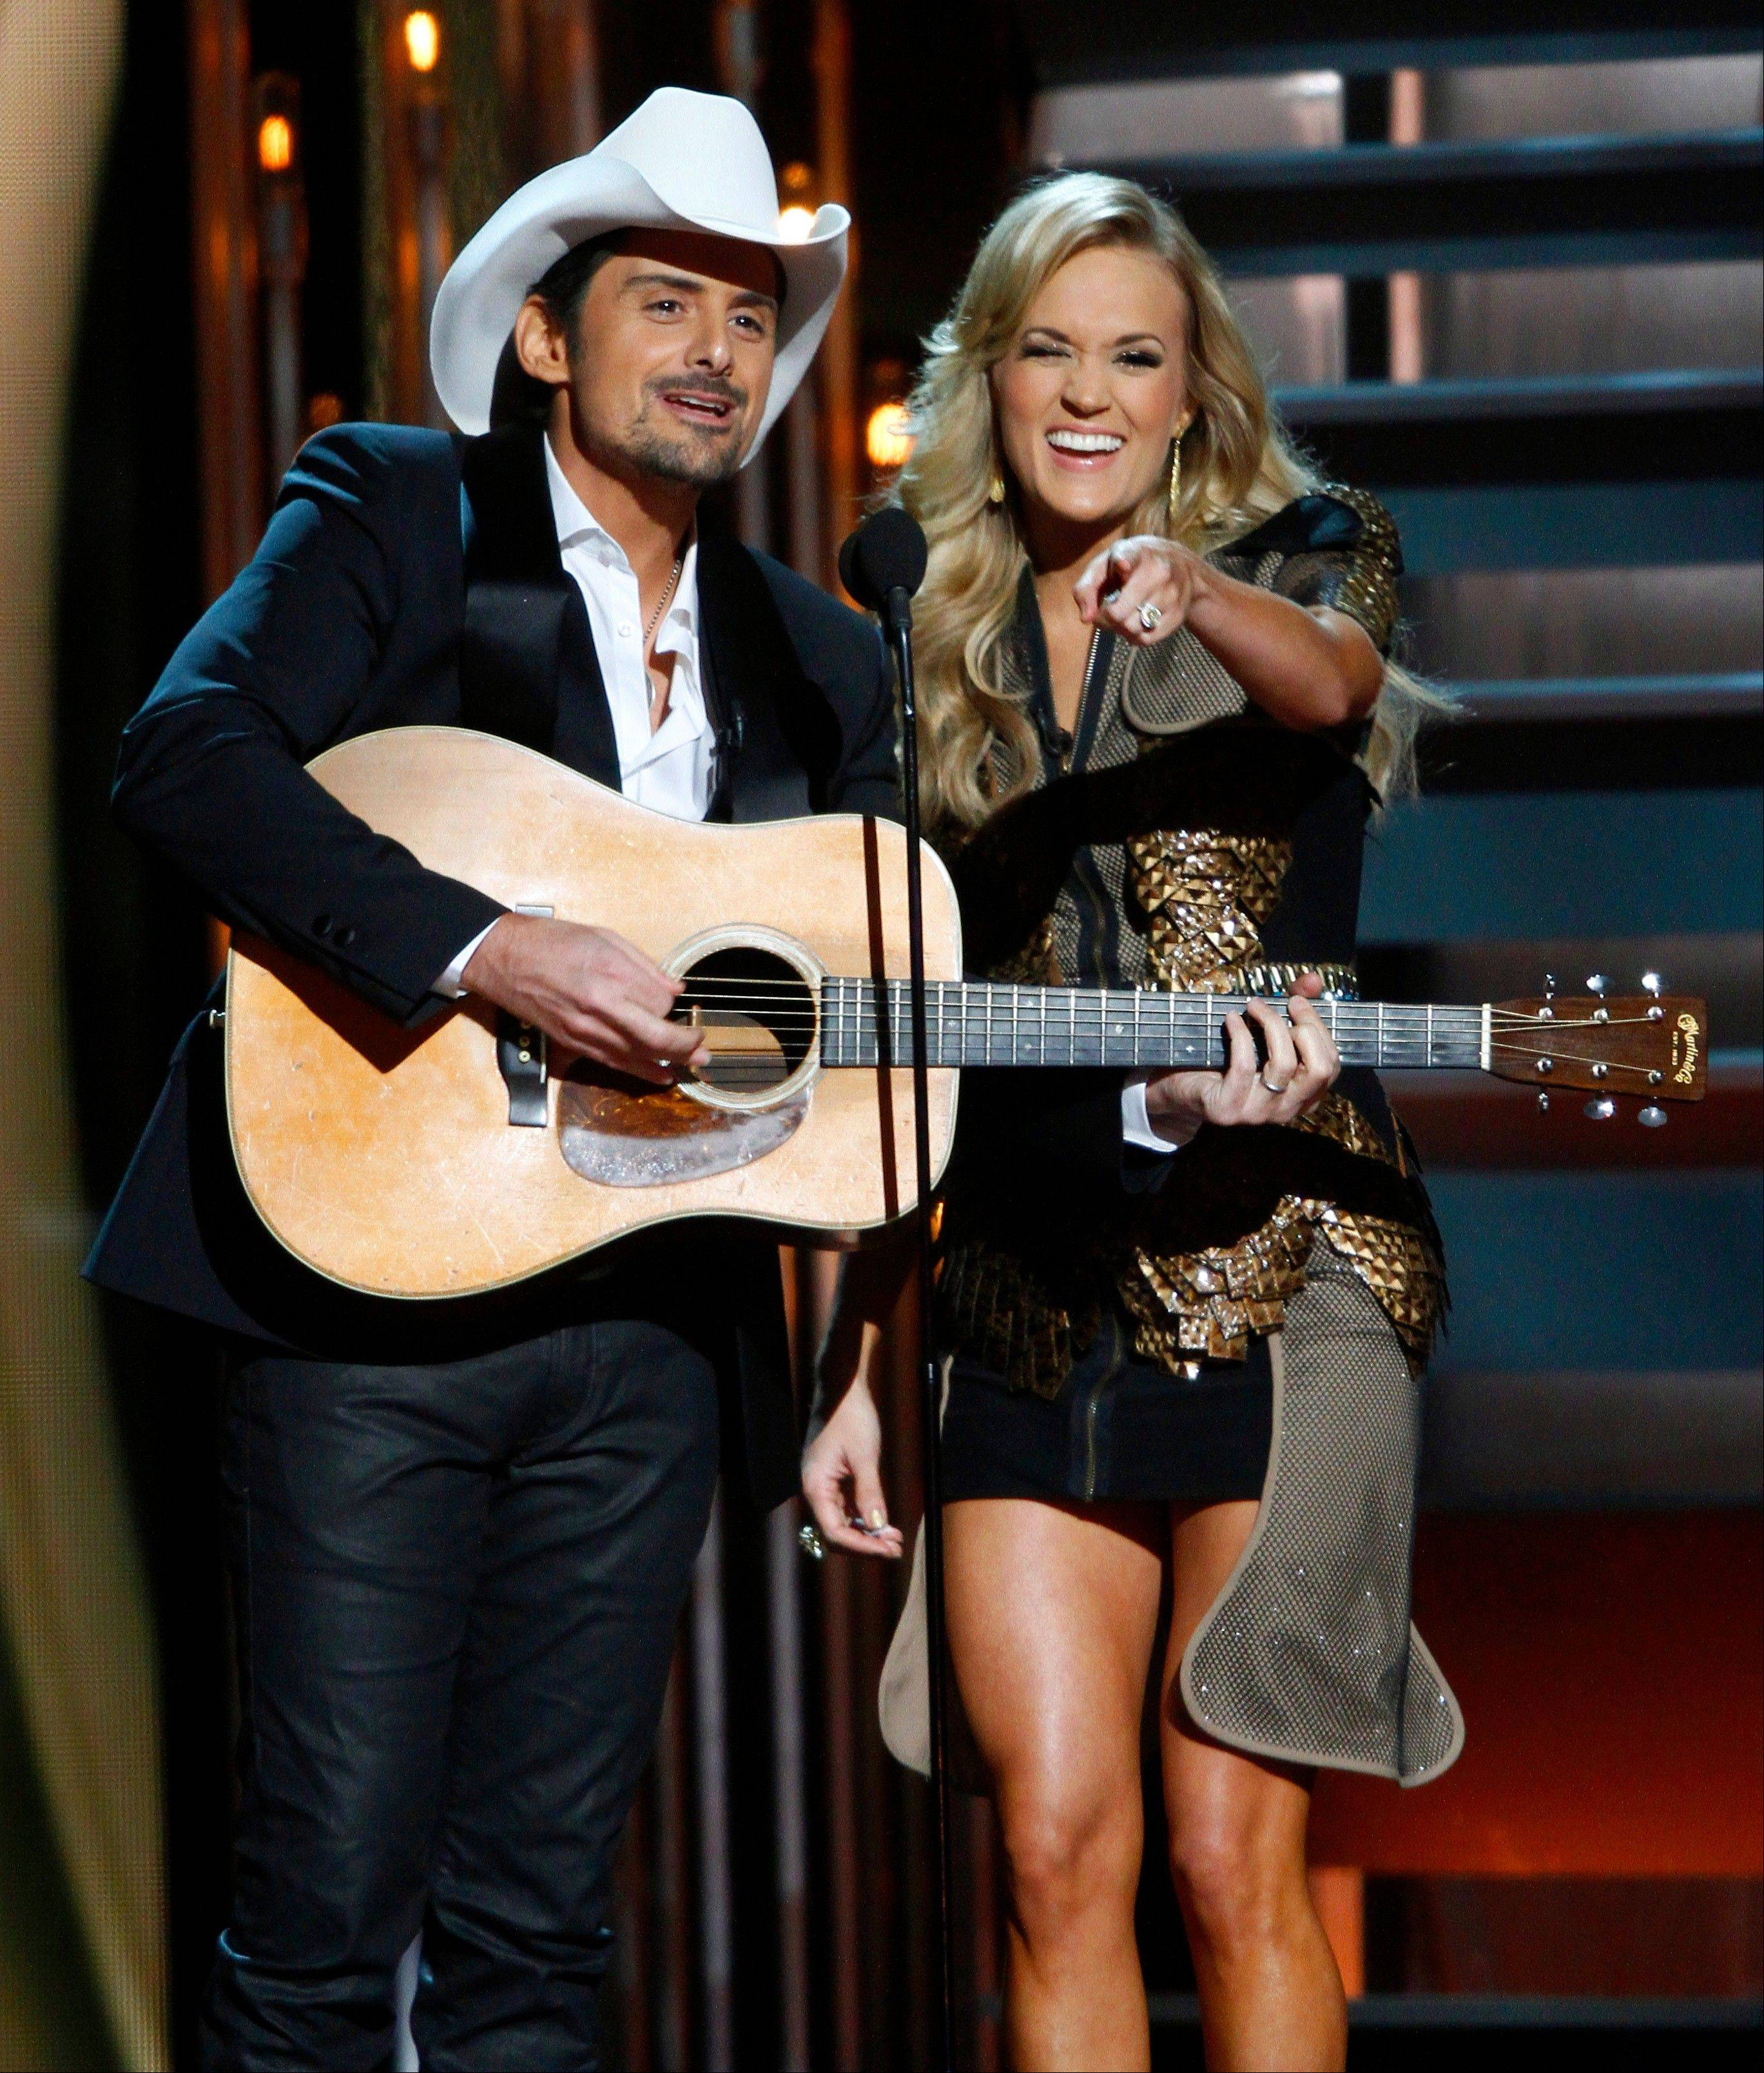 Co-hosts Brad Paisley, left, and Carrie Underwood perform